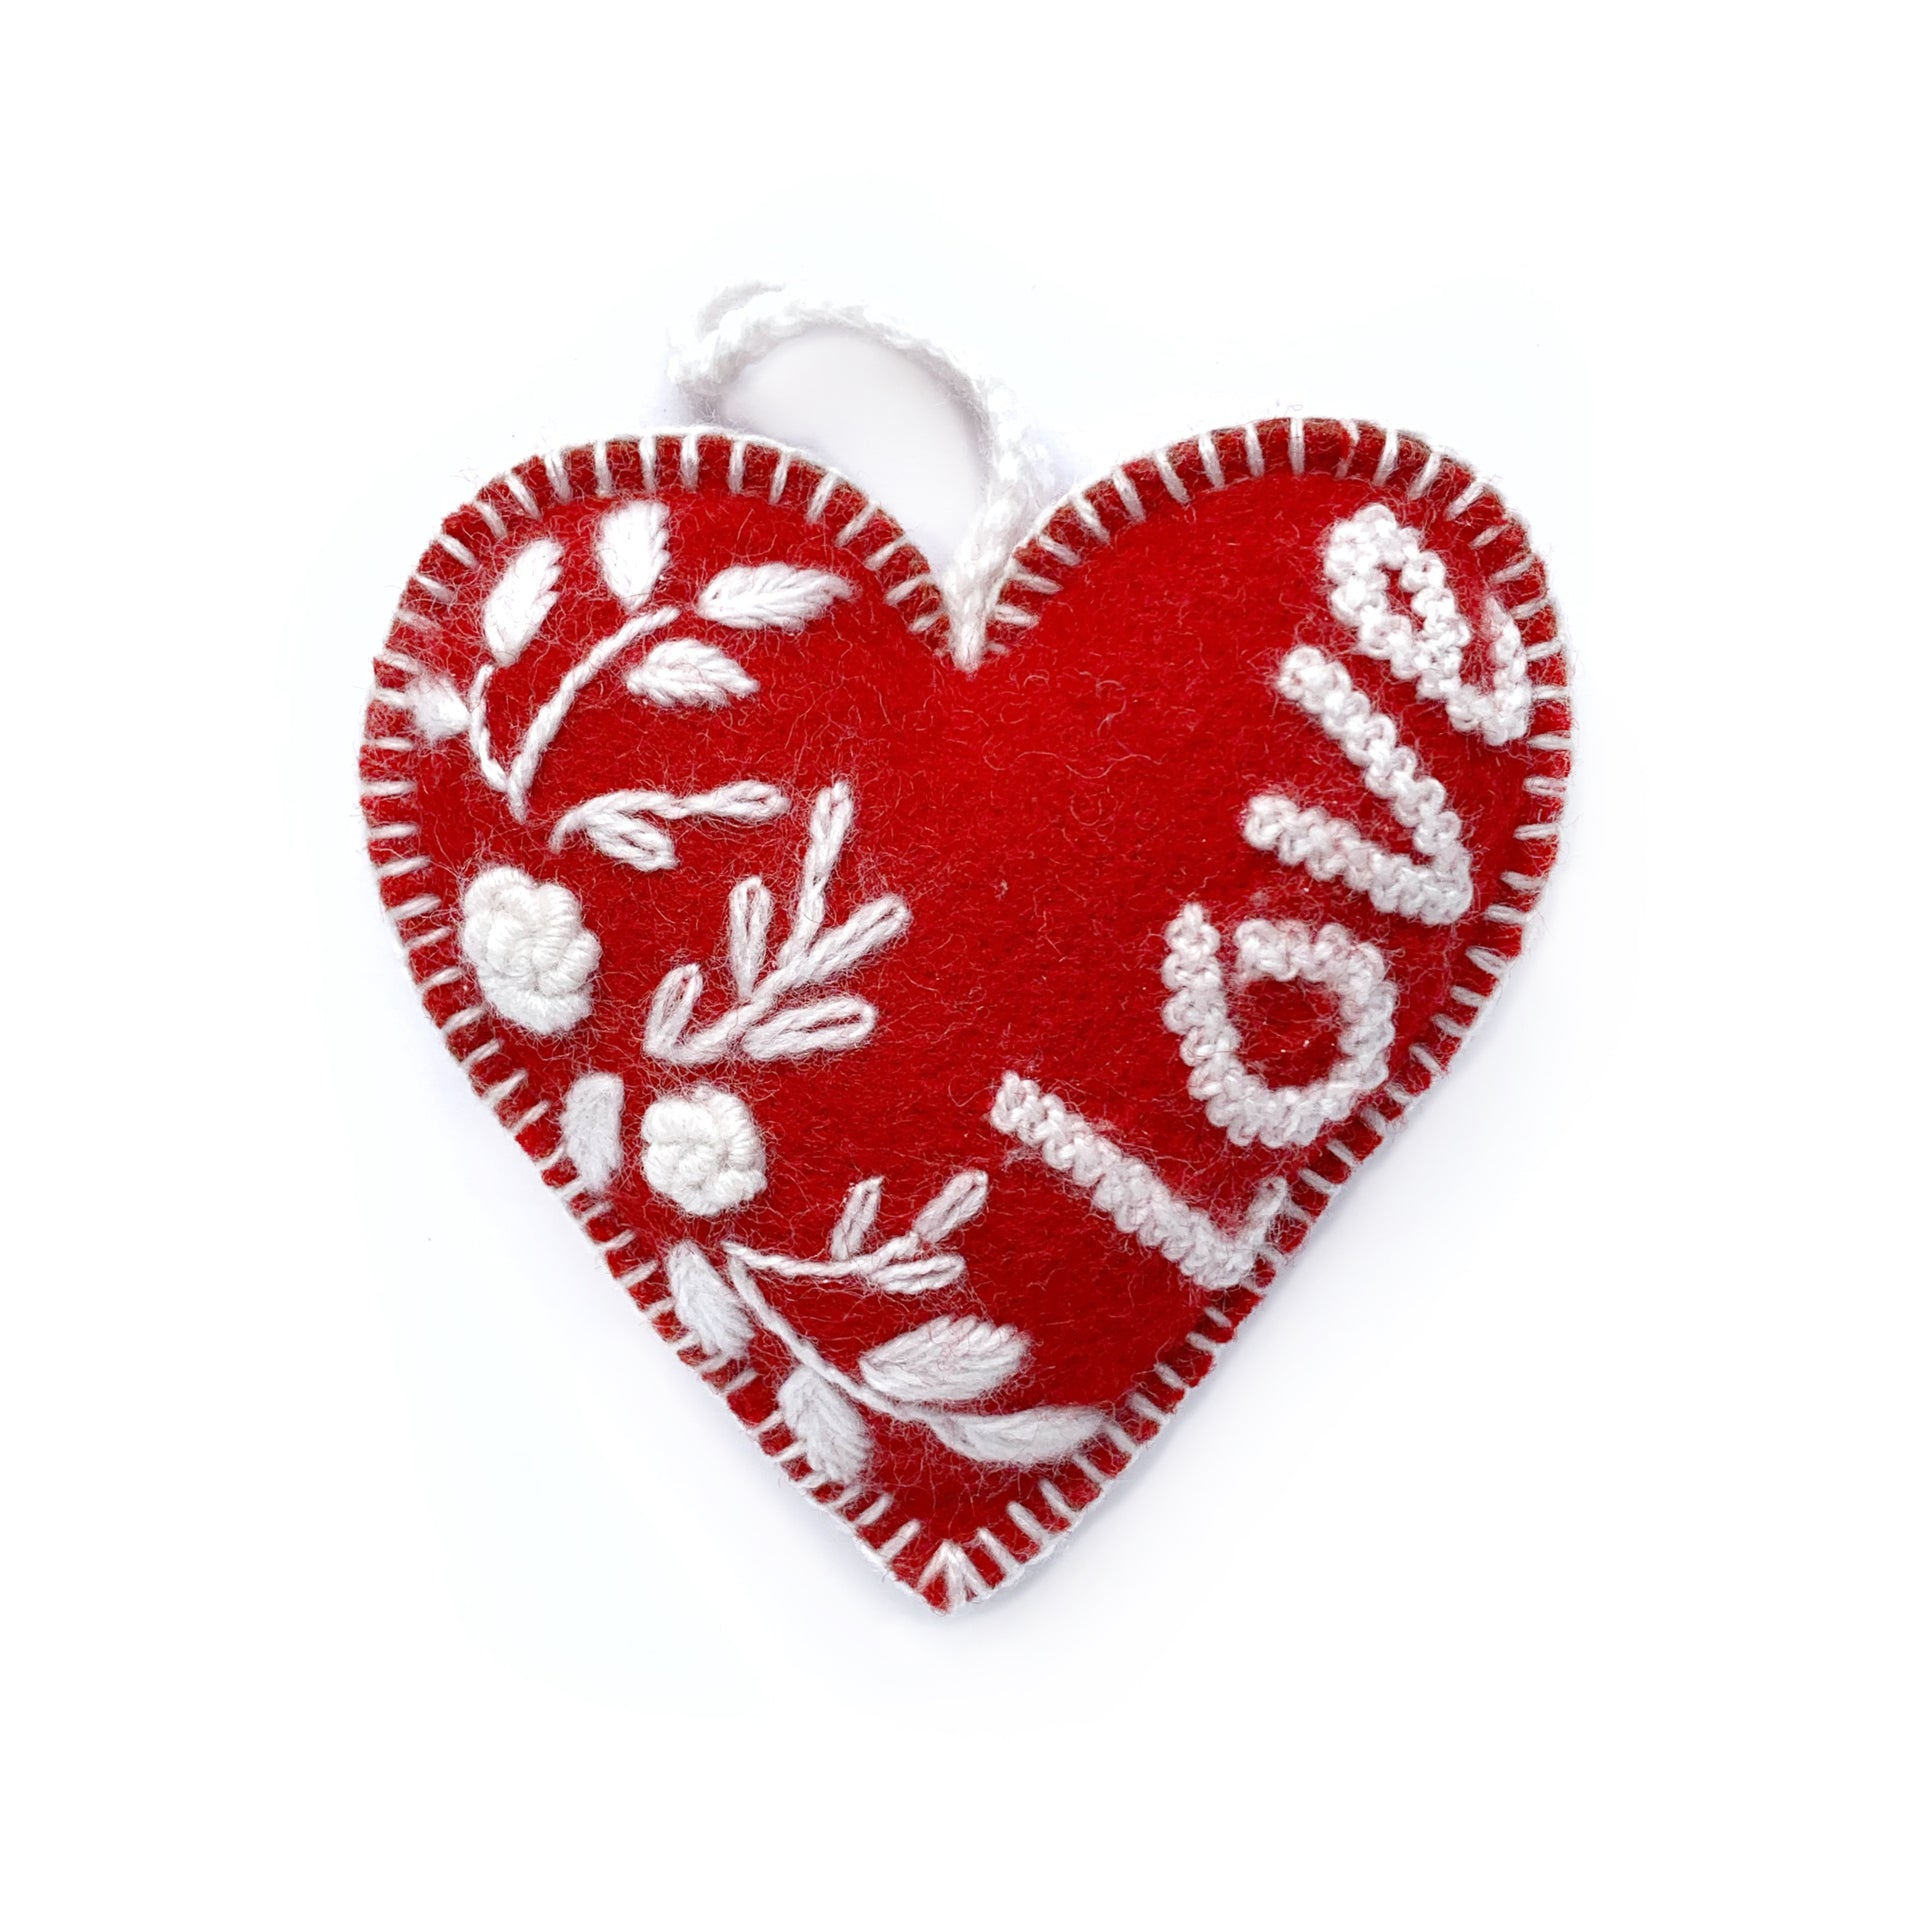 LOVE Heart Valentine's Ornament, Embroidered Wool